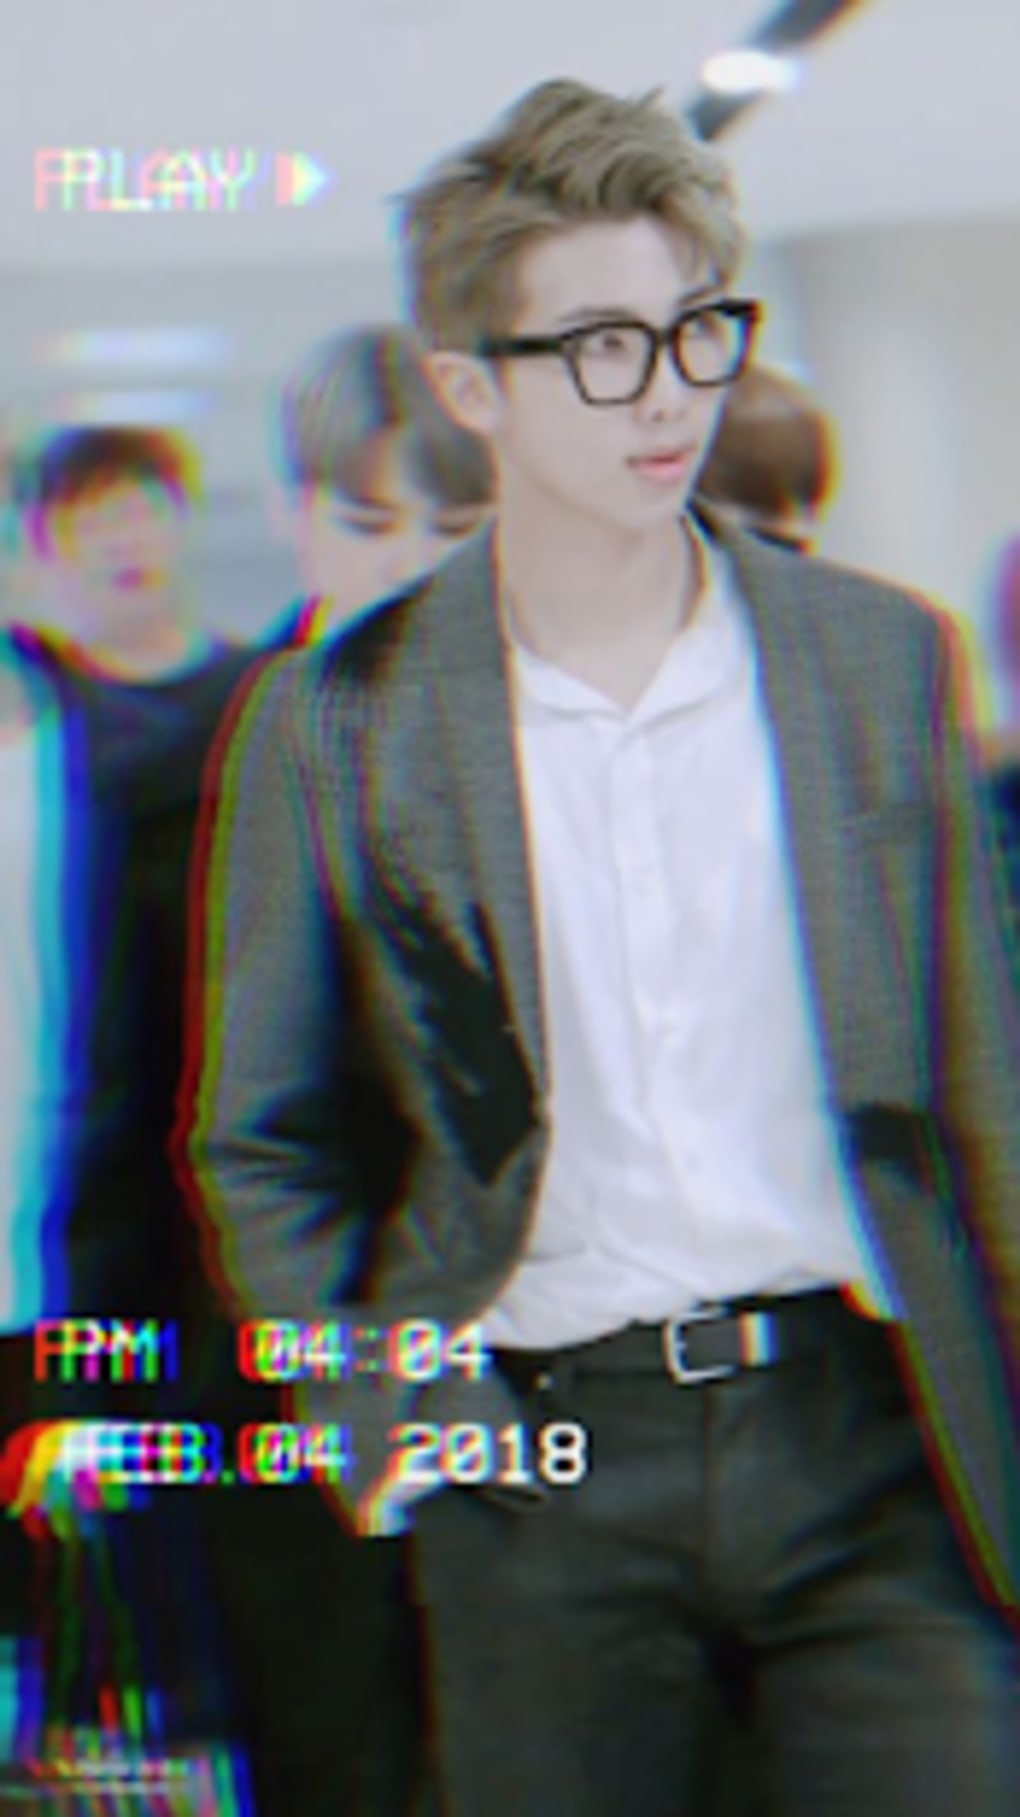 Bts Live Wallpaper Bts Namjoon With Glasses Hd Wallpapers